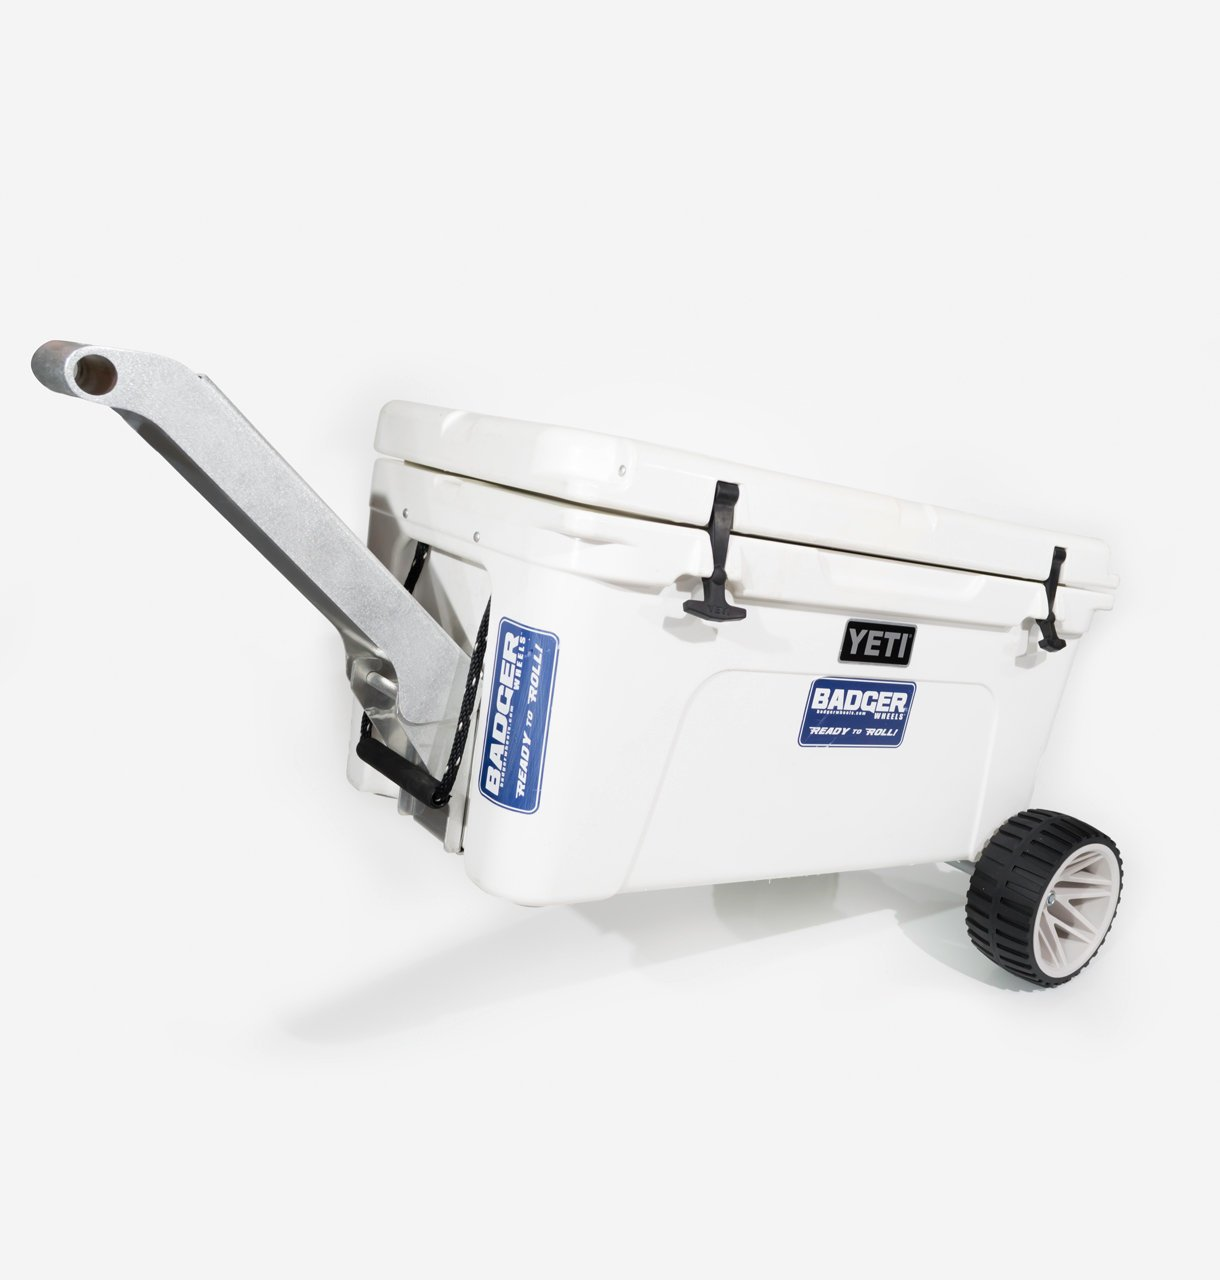 Large Wheel Badger 65 Kit - Single Axle + Handle/Stand (Fits Tundra 50, 65 and 110) by Badger Wheels